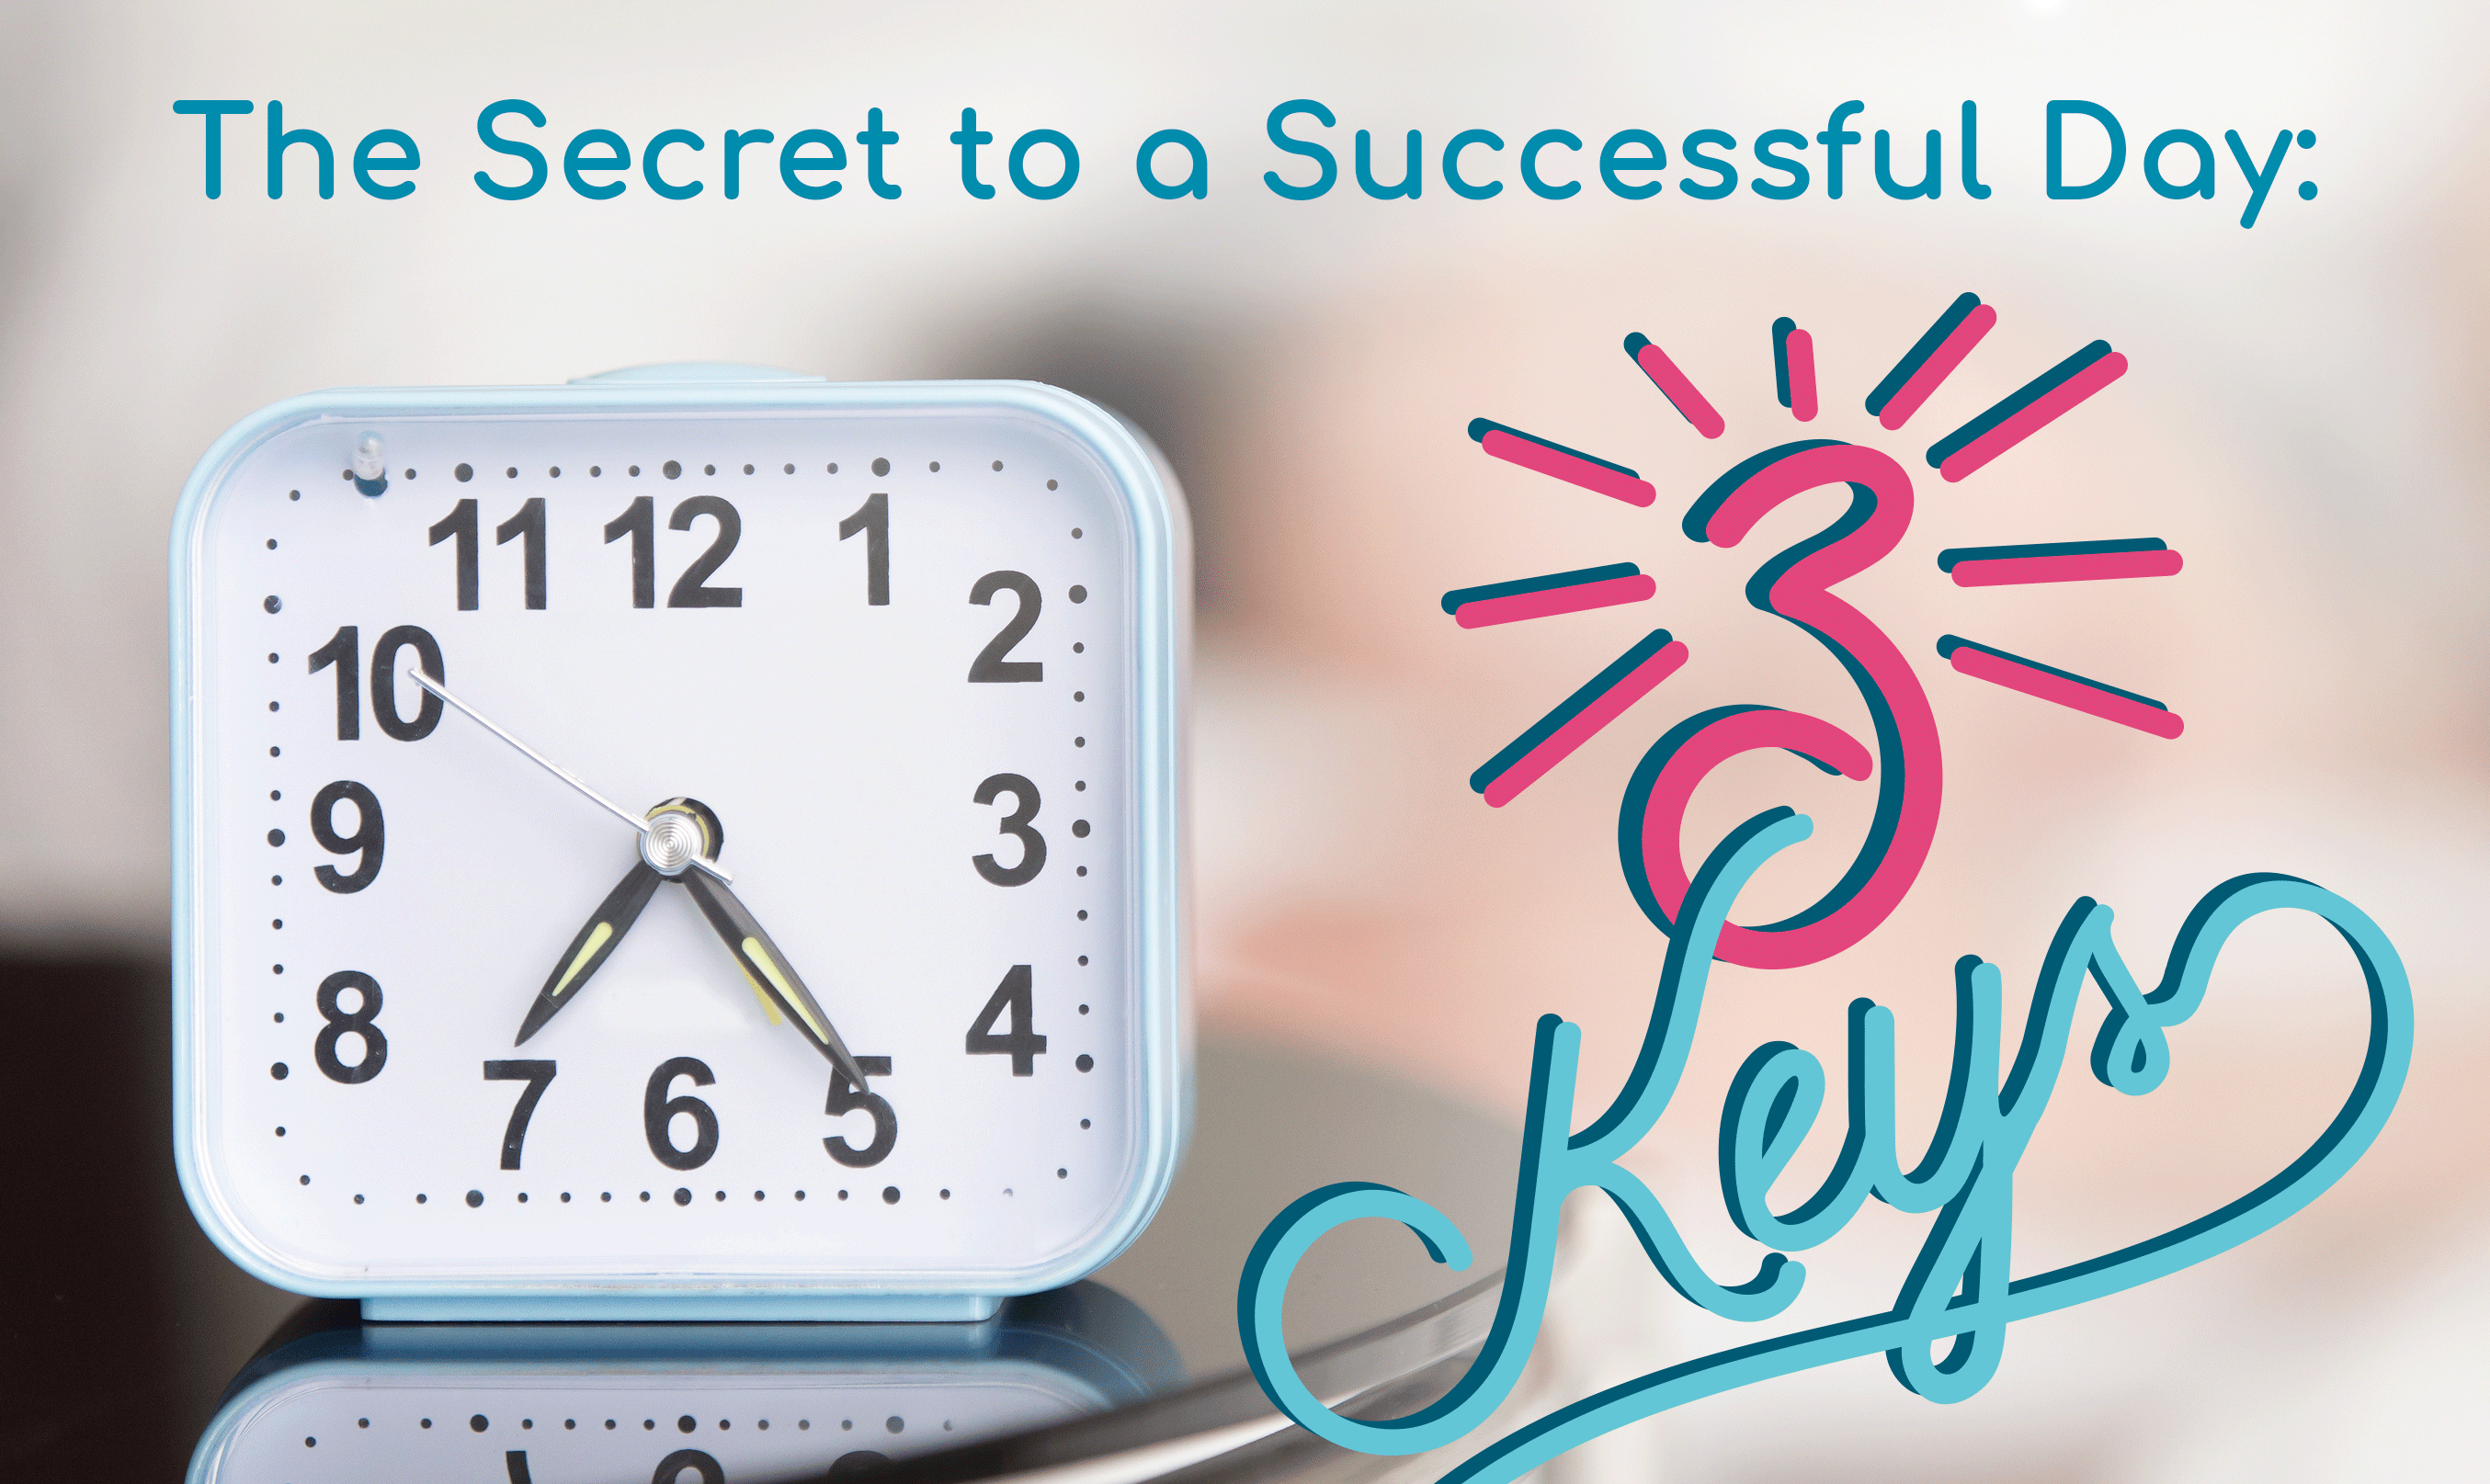 The Secret to a Successful Day: 3 Keys